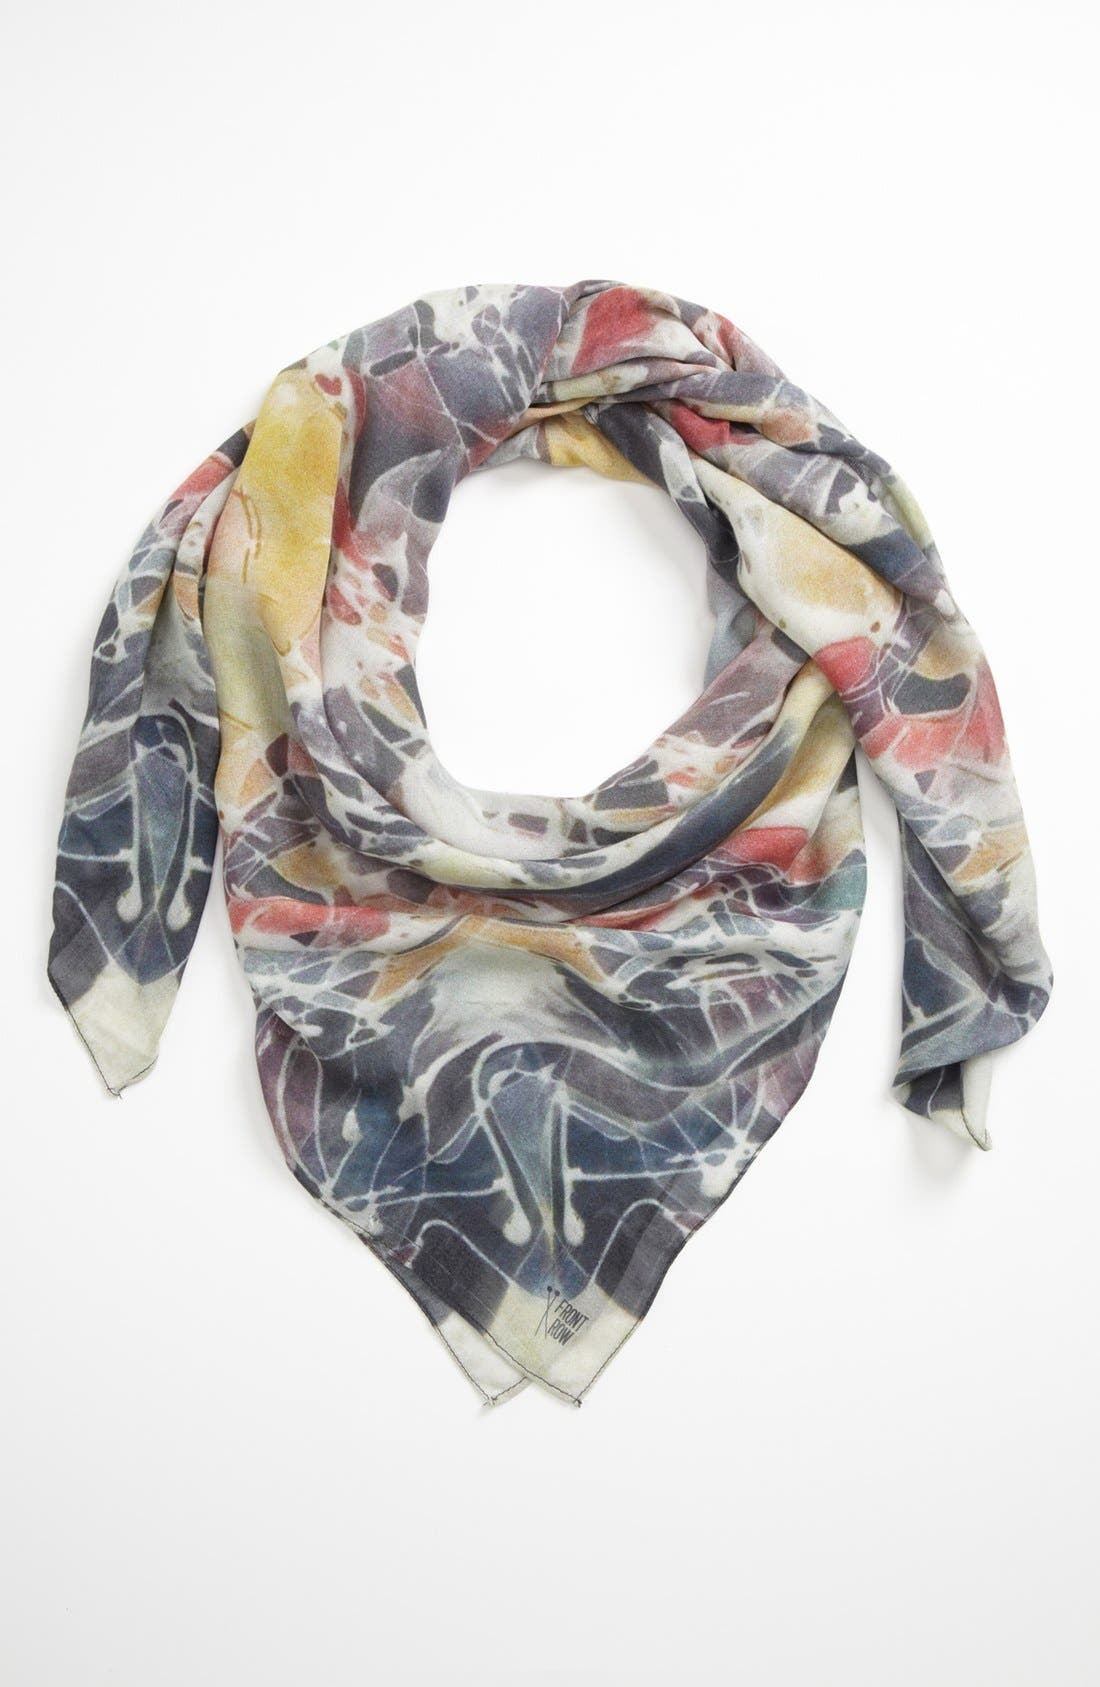 Alternate Image 1 Selected - Front Row Society 'Frosted Flower' Scarf